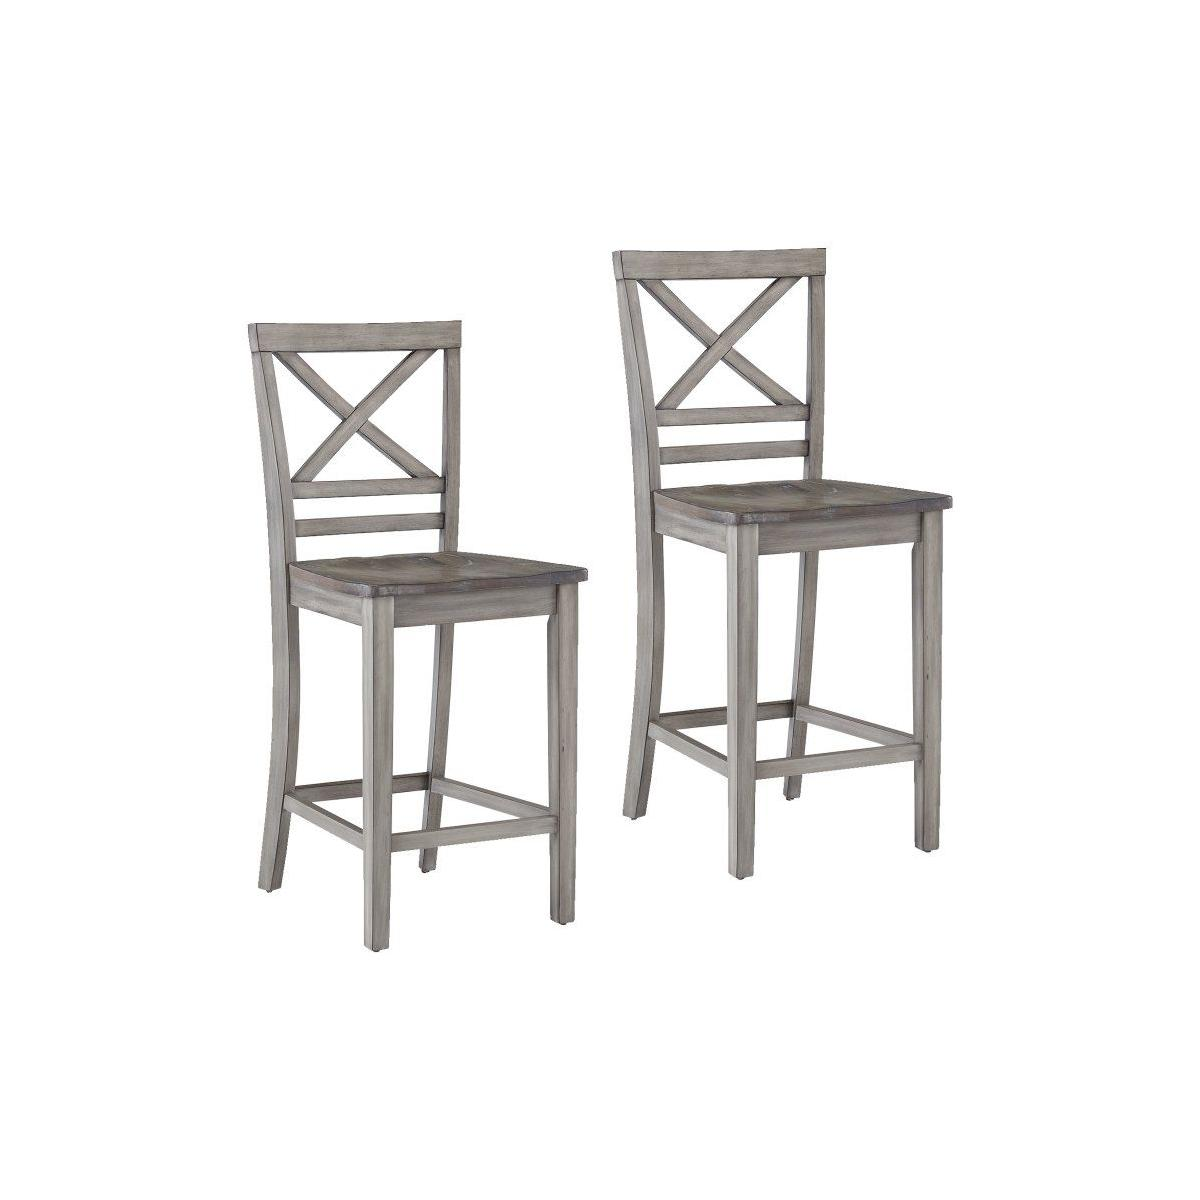 Fairhaven Grey Distressed 2-Pack Counter Height Barstools